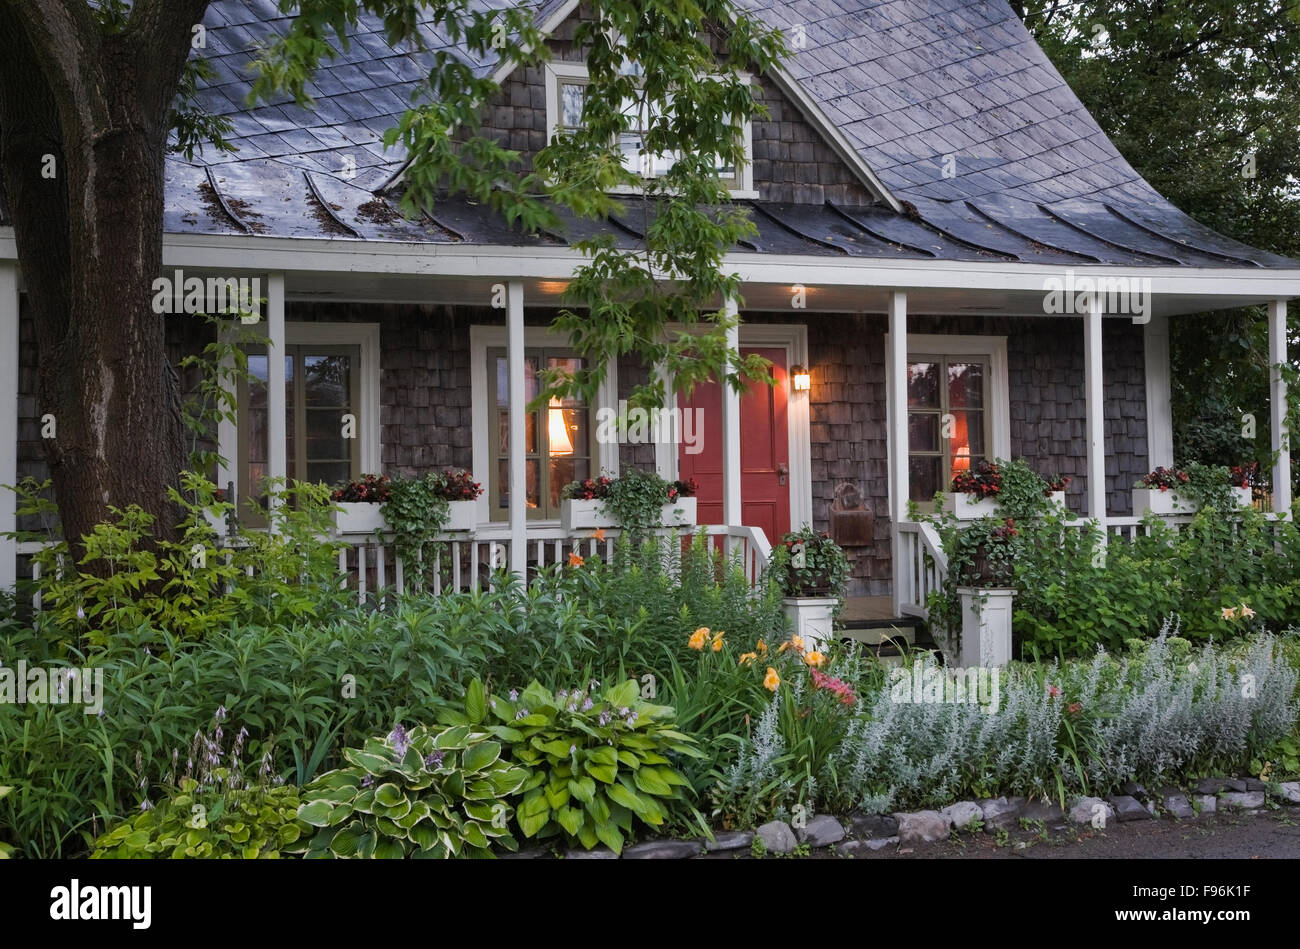 Old 1809 Weathered Cedar Shingles With White Trim Cottage Style Residential Home Facade At Dusk In Summer Quebec Canada This